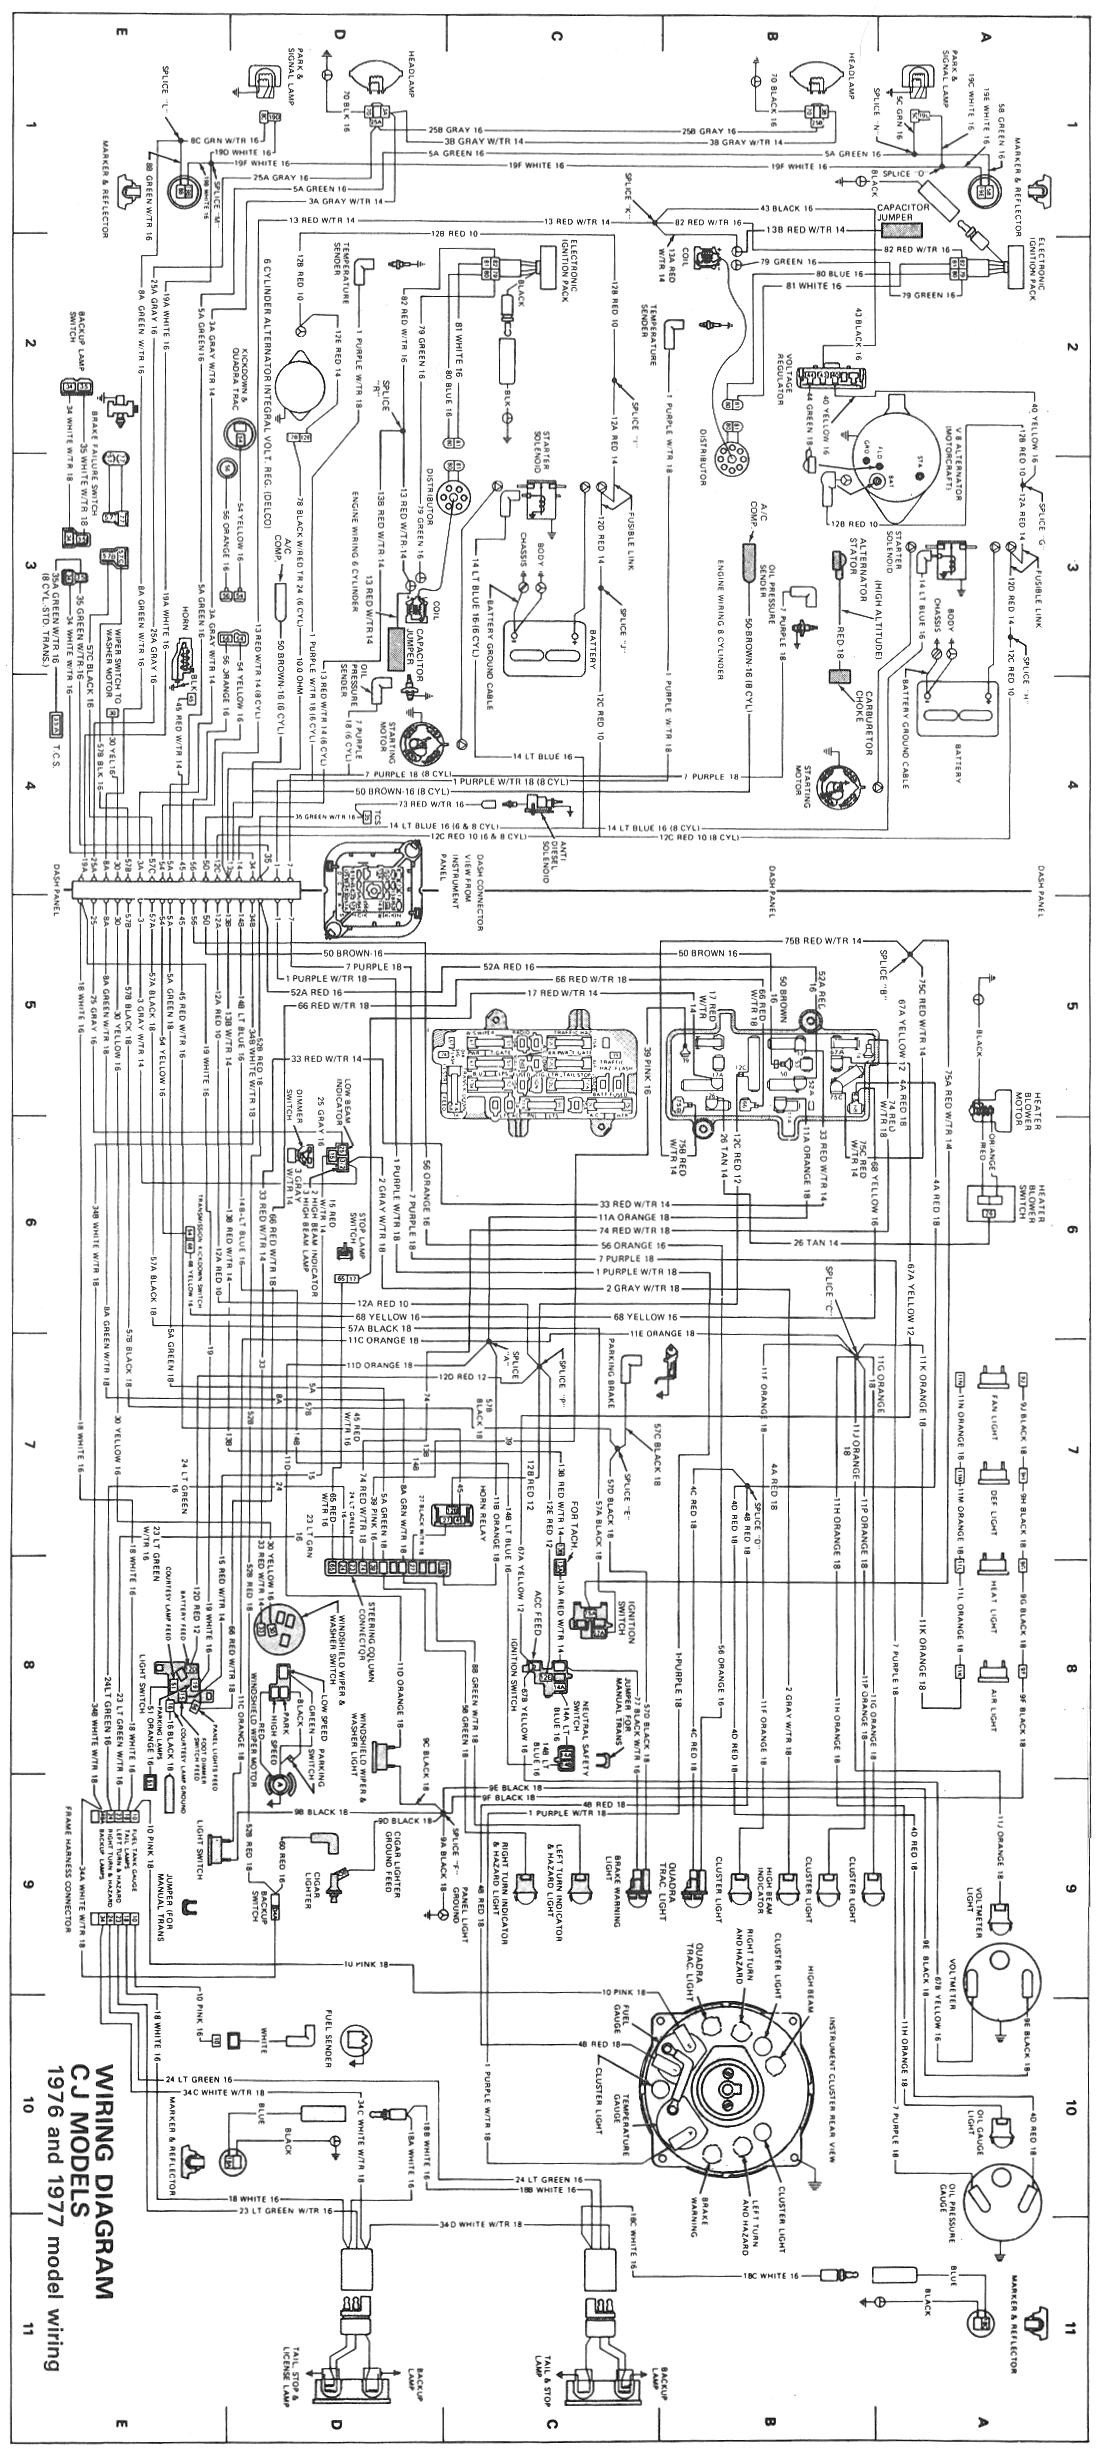 79 jeep cj7 wiring diagram detailed schematics diagram rh keyplusrubber com 79 jeep cj5 wiring diagram starter solenoid Jeep CJ5 Headlight Wiring Diagrams